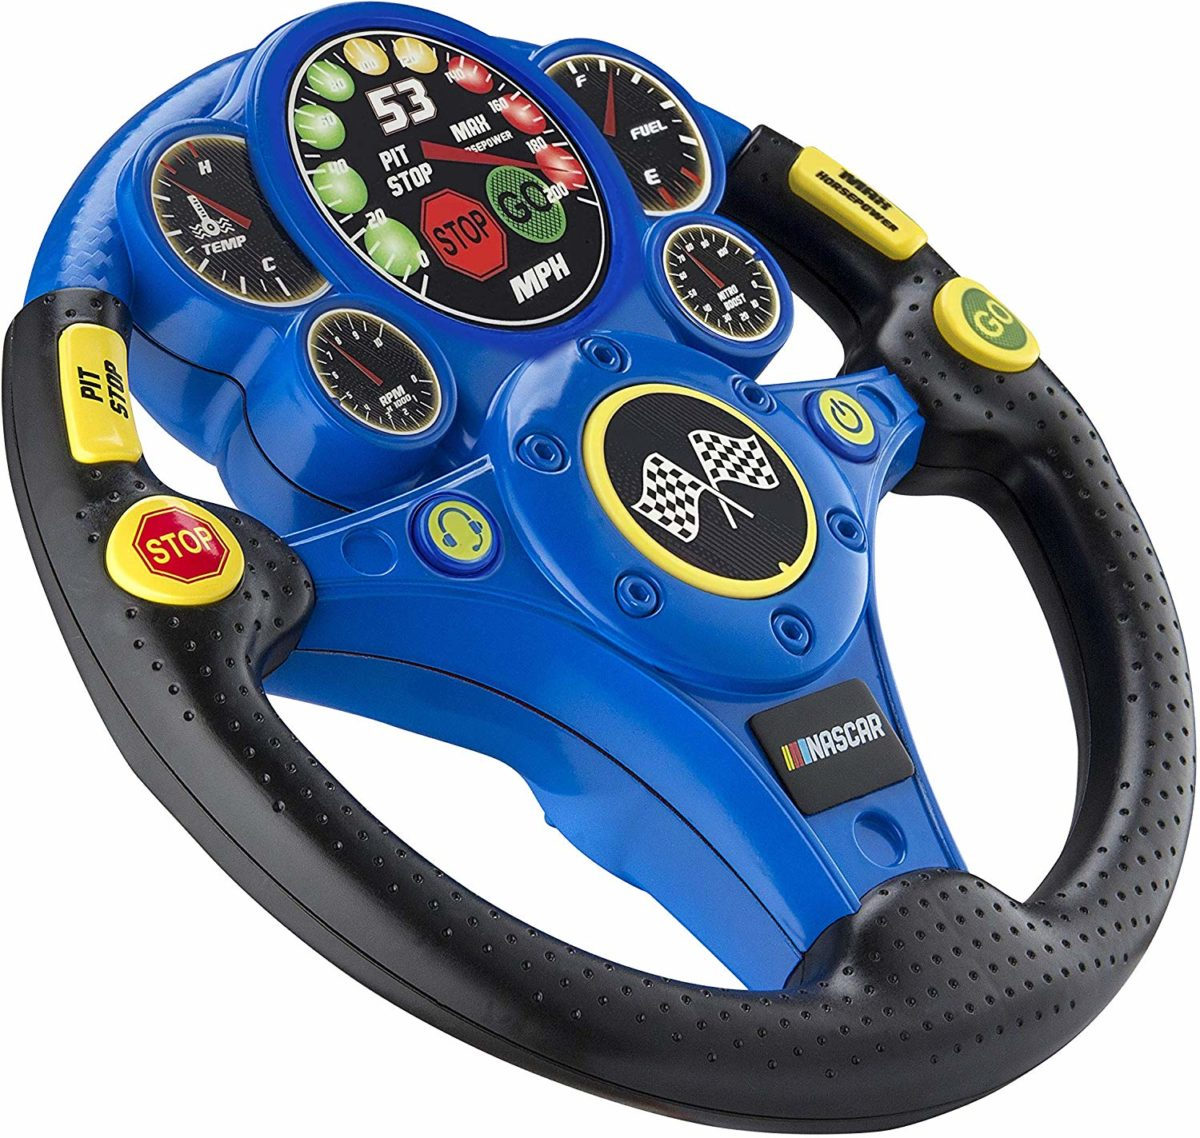 NASCAR Racing Wheel Rev N Go Steering Wheel for Kids - Top Toys and Gifts for Four Year Old Boys 2